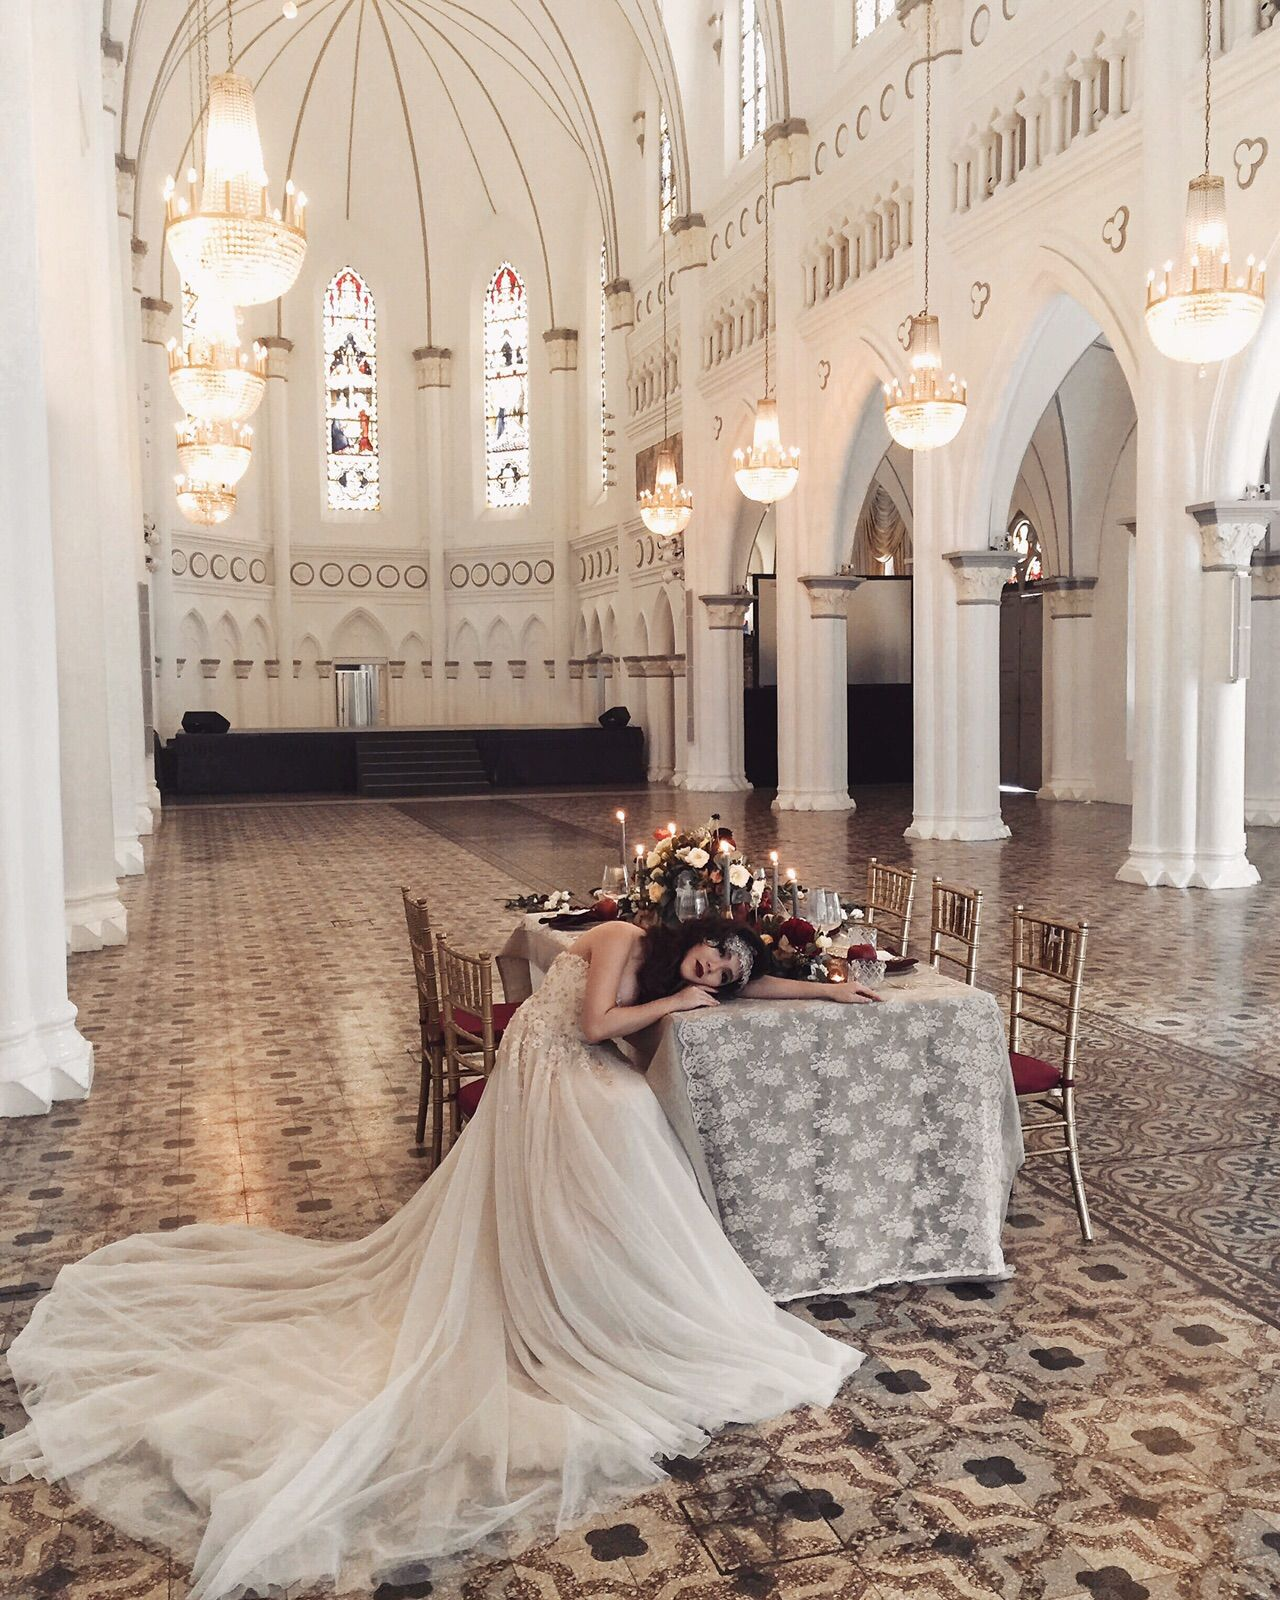 Chijmes Singapore // Wedding Venue Inspiration